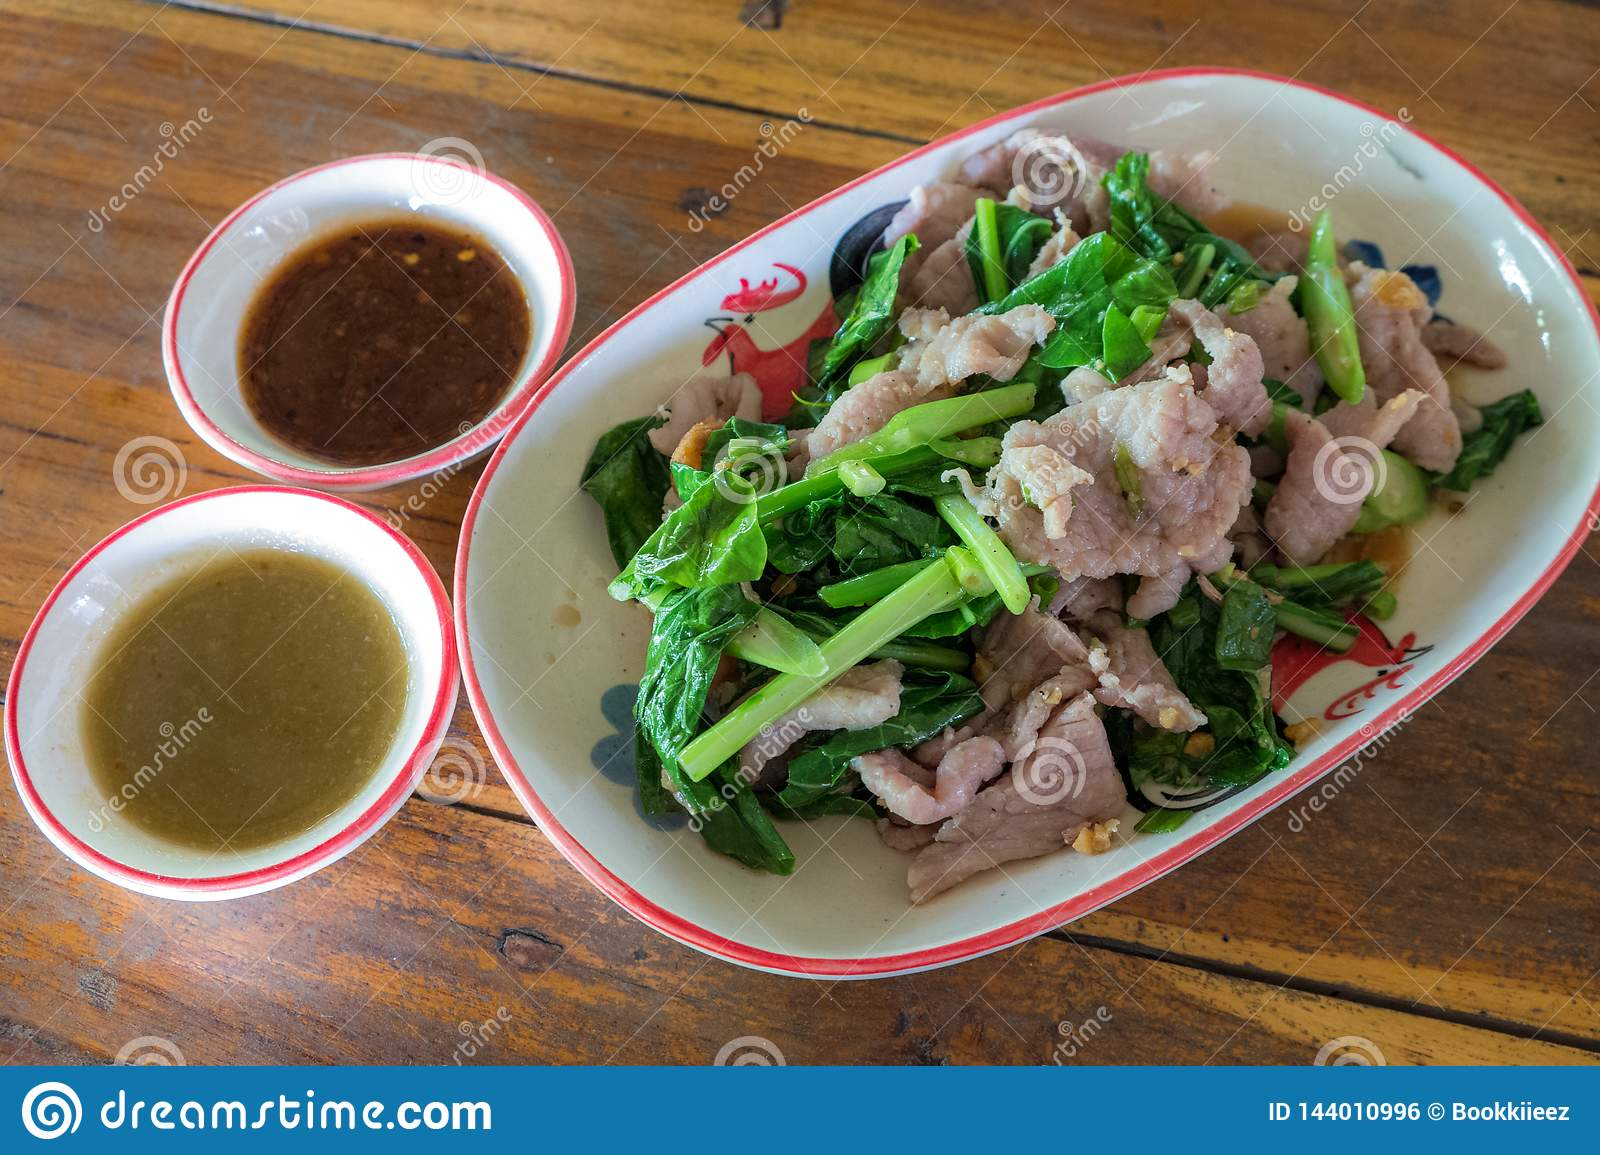 Pork boil and vegetable with spicy source. Thai food.